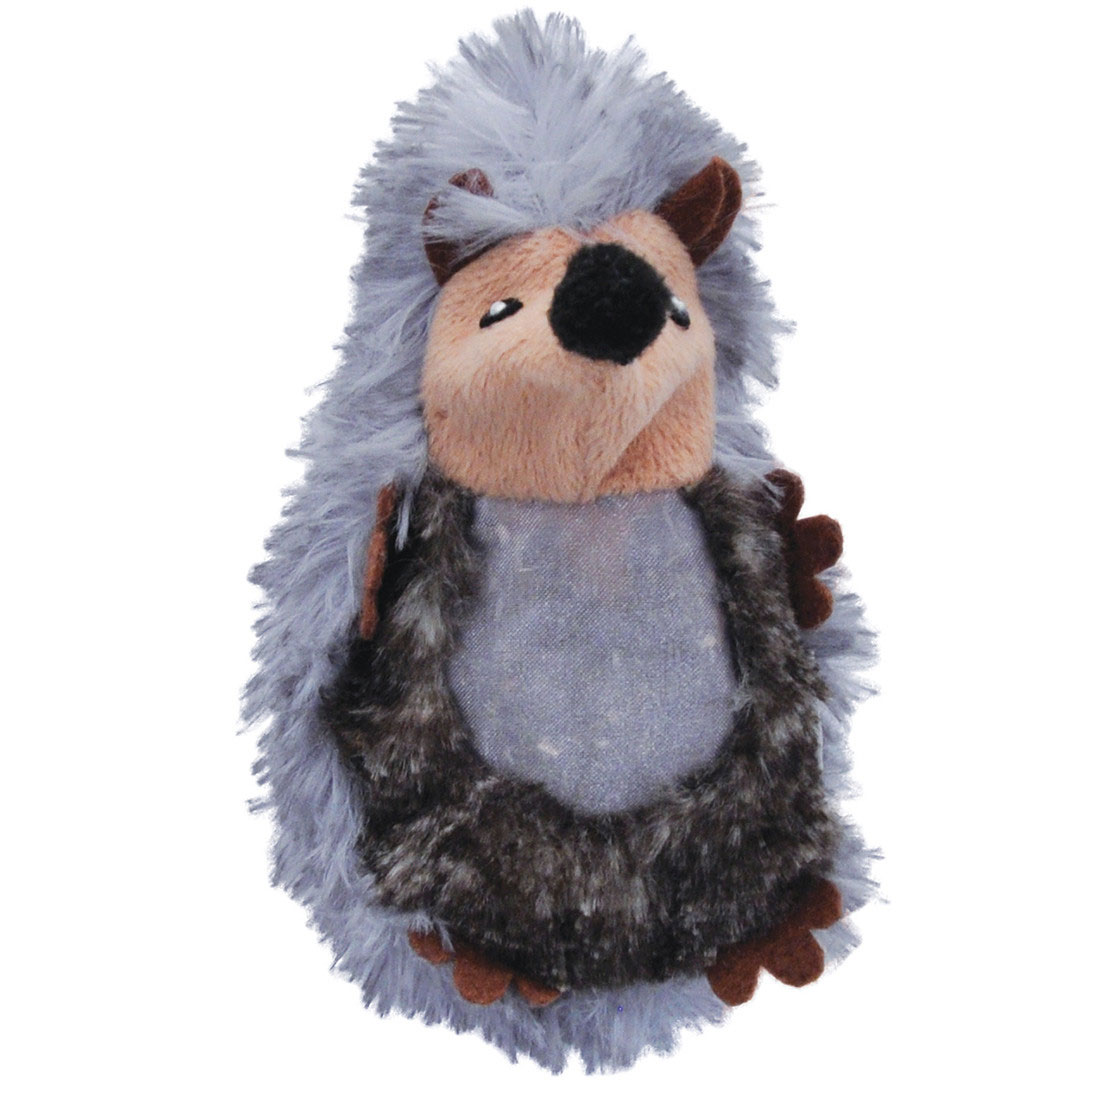 Turbo Catnip Belly Critters Hedgehog Cat Toy